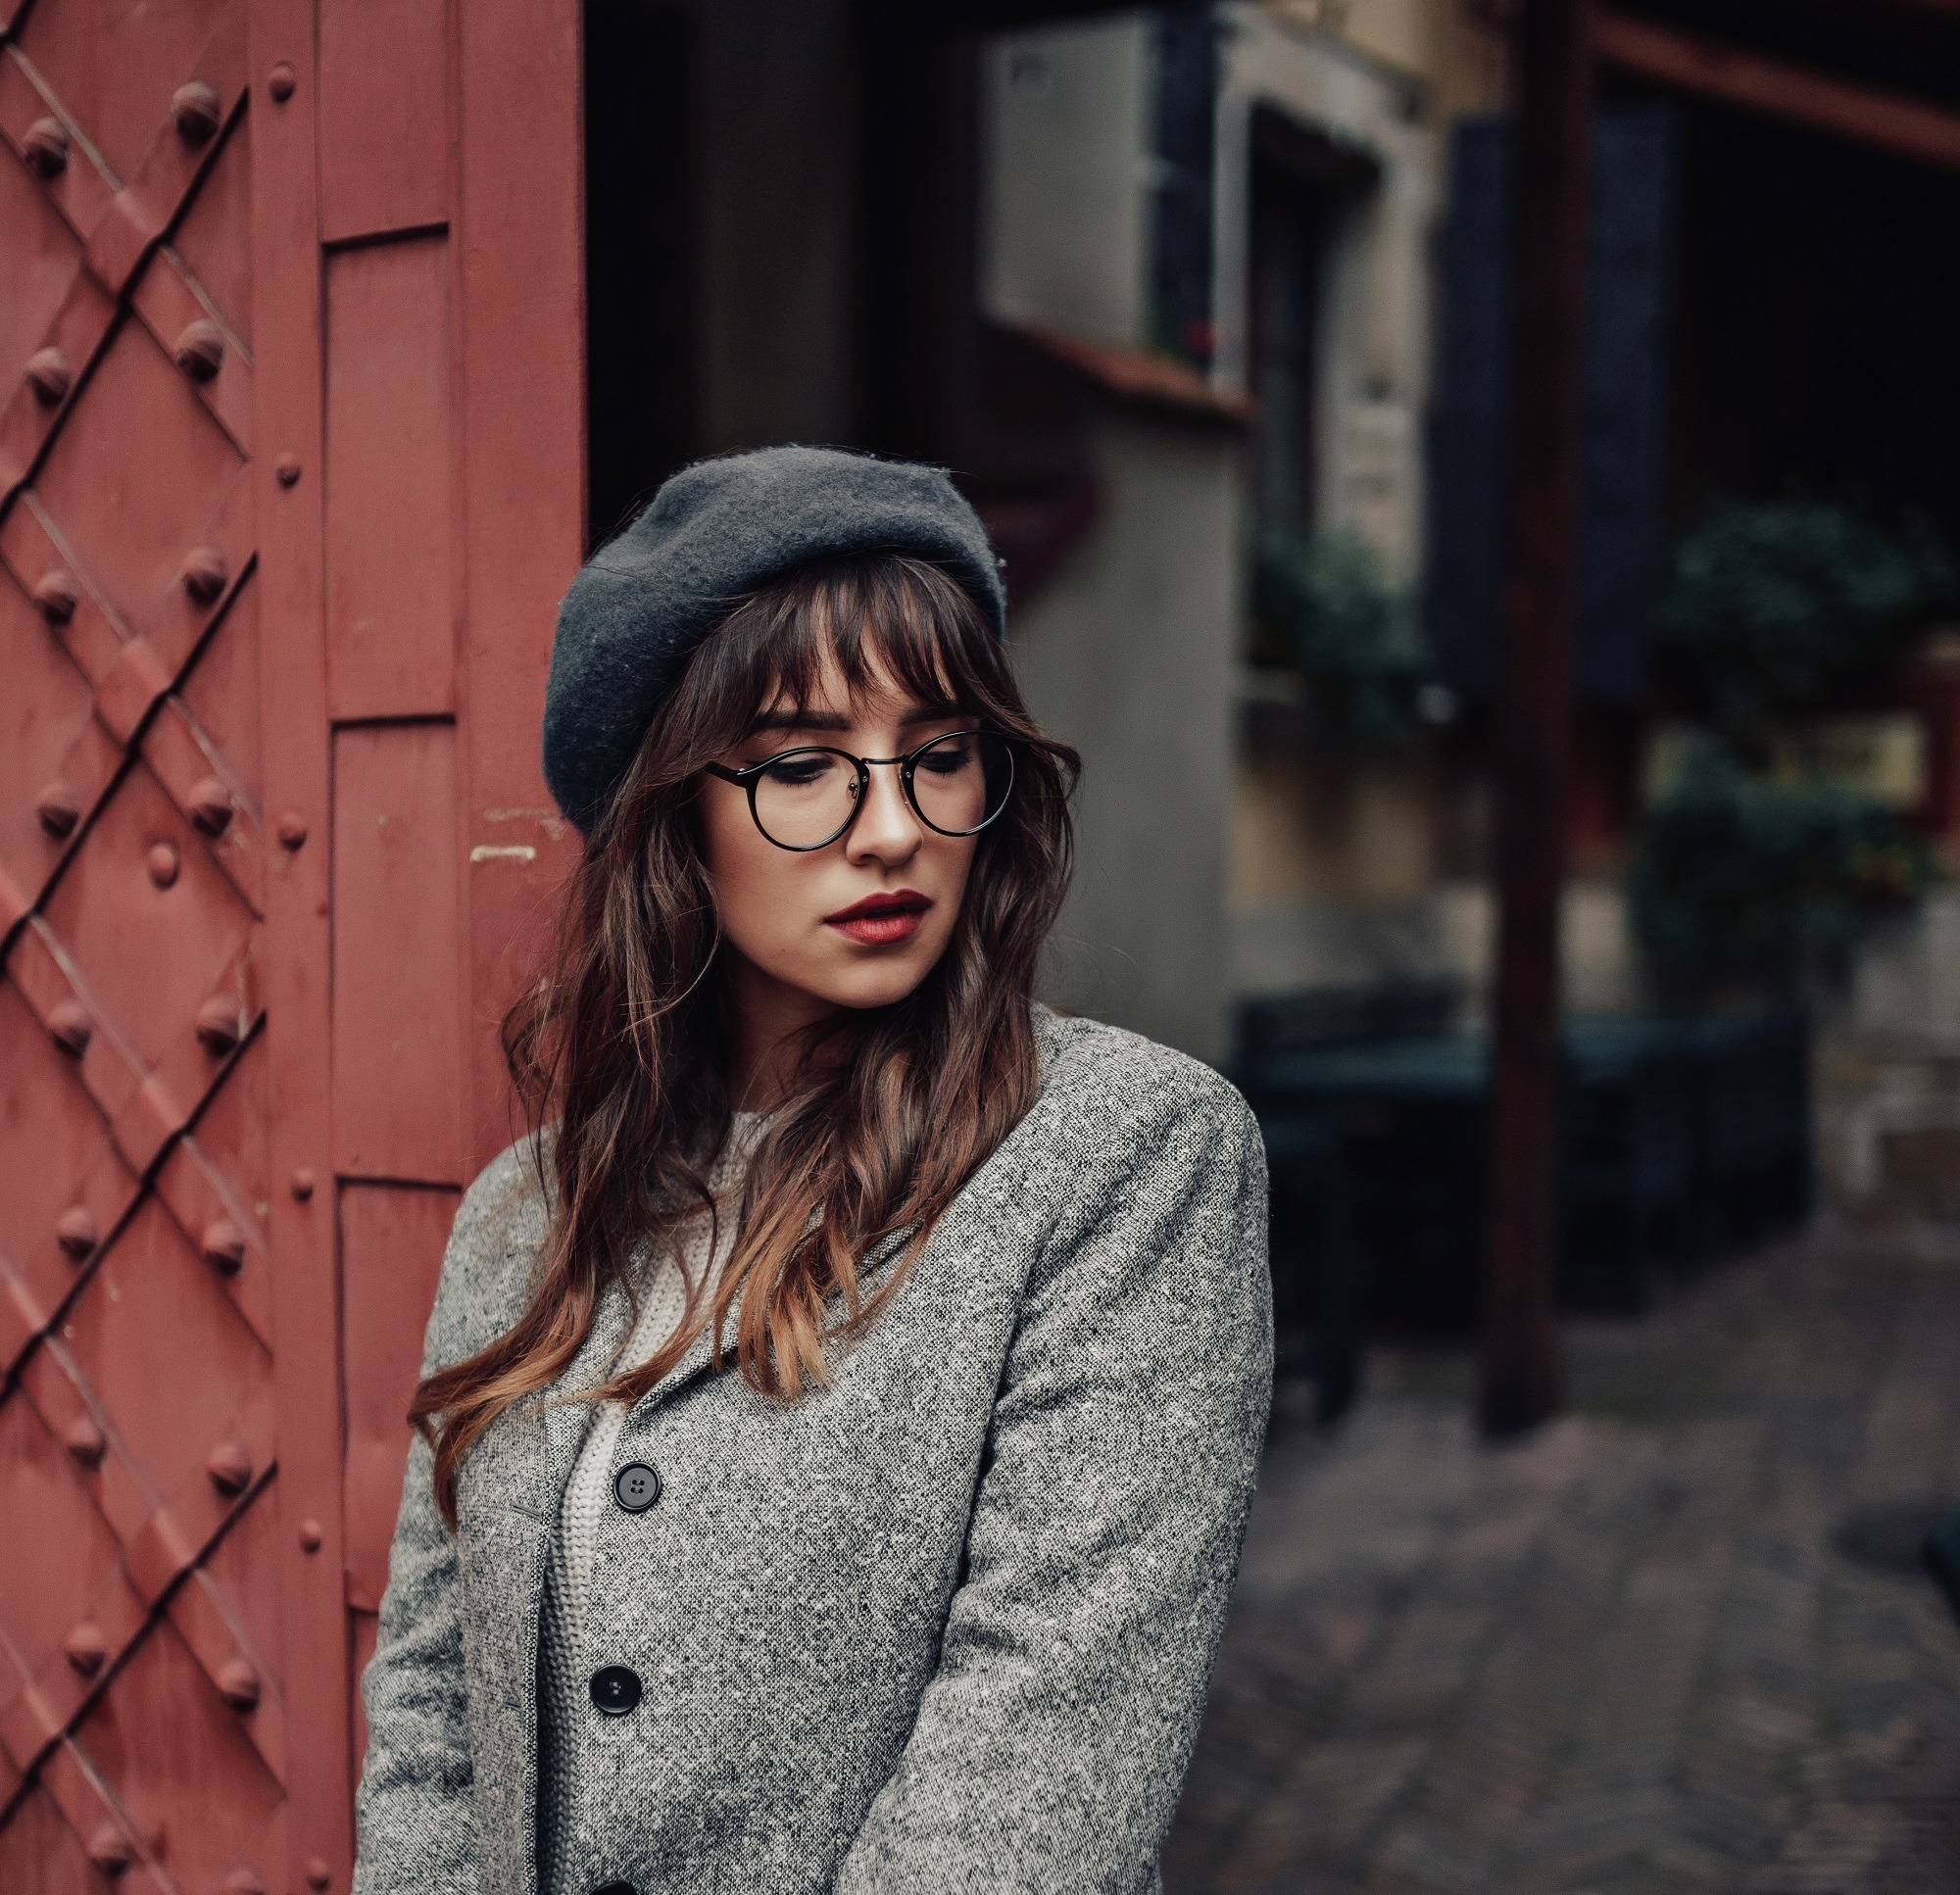 Should I get bangs: Woman with long wavy hair and wispy bangs with eyeglasses wearing a coat and bonnet beside a red gate